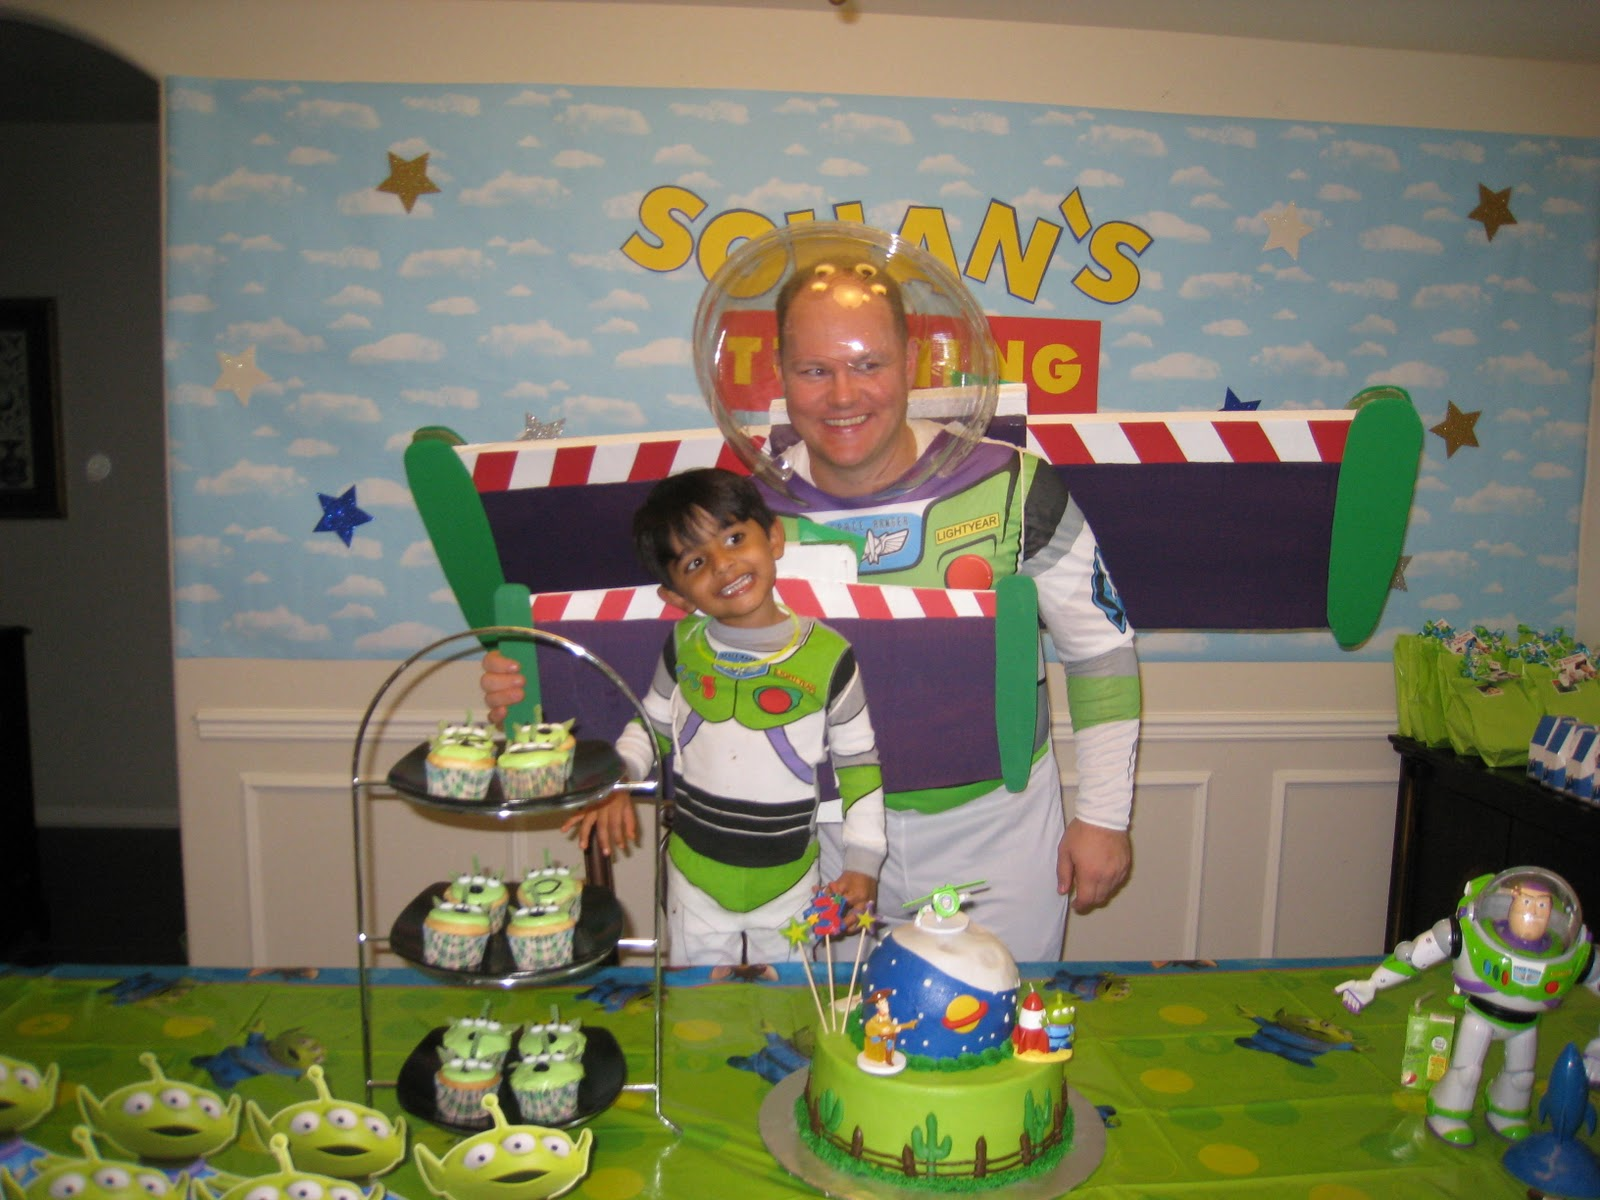 The Party Wall Toy Story Party